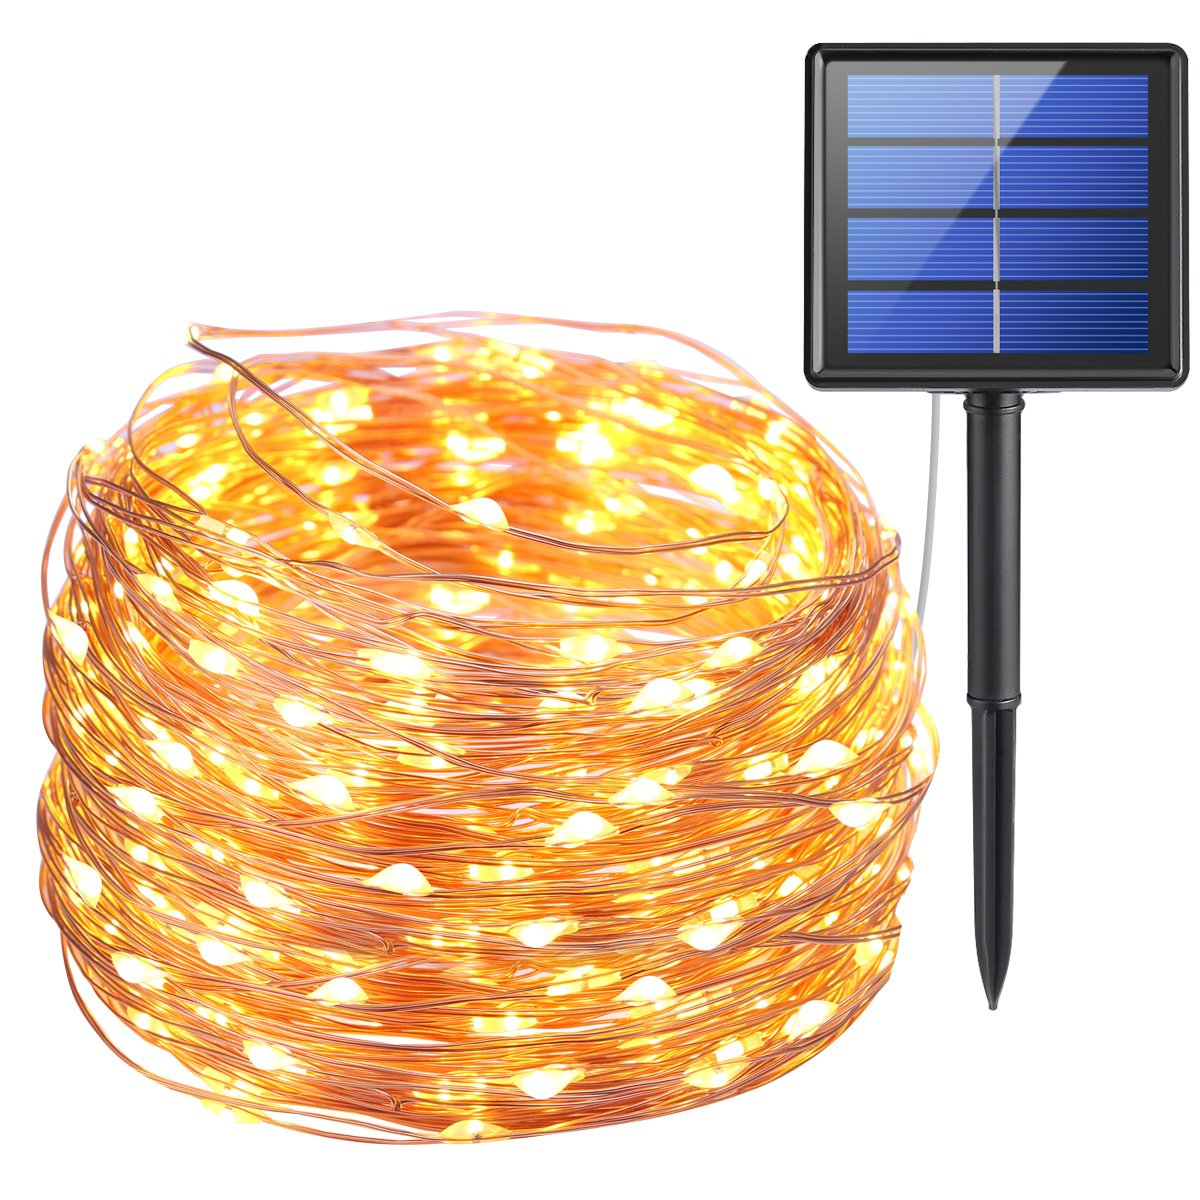 AMIR Solar Powered String Lights, 200 LED Copper Wire Lights, 72ft 8 Modes Starry Lights, Waterproof IP65 Fairy Christams Decorative Lights for Outdoor, Wedding, Homes, Party, Halloween (Warm White)